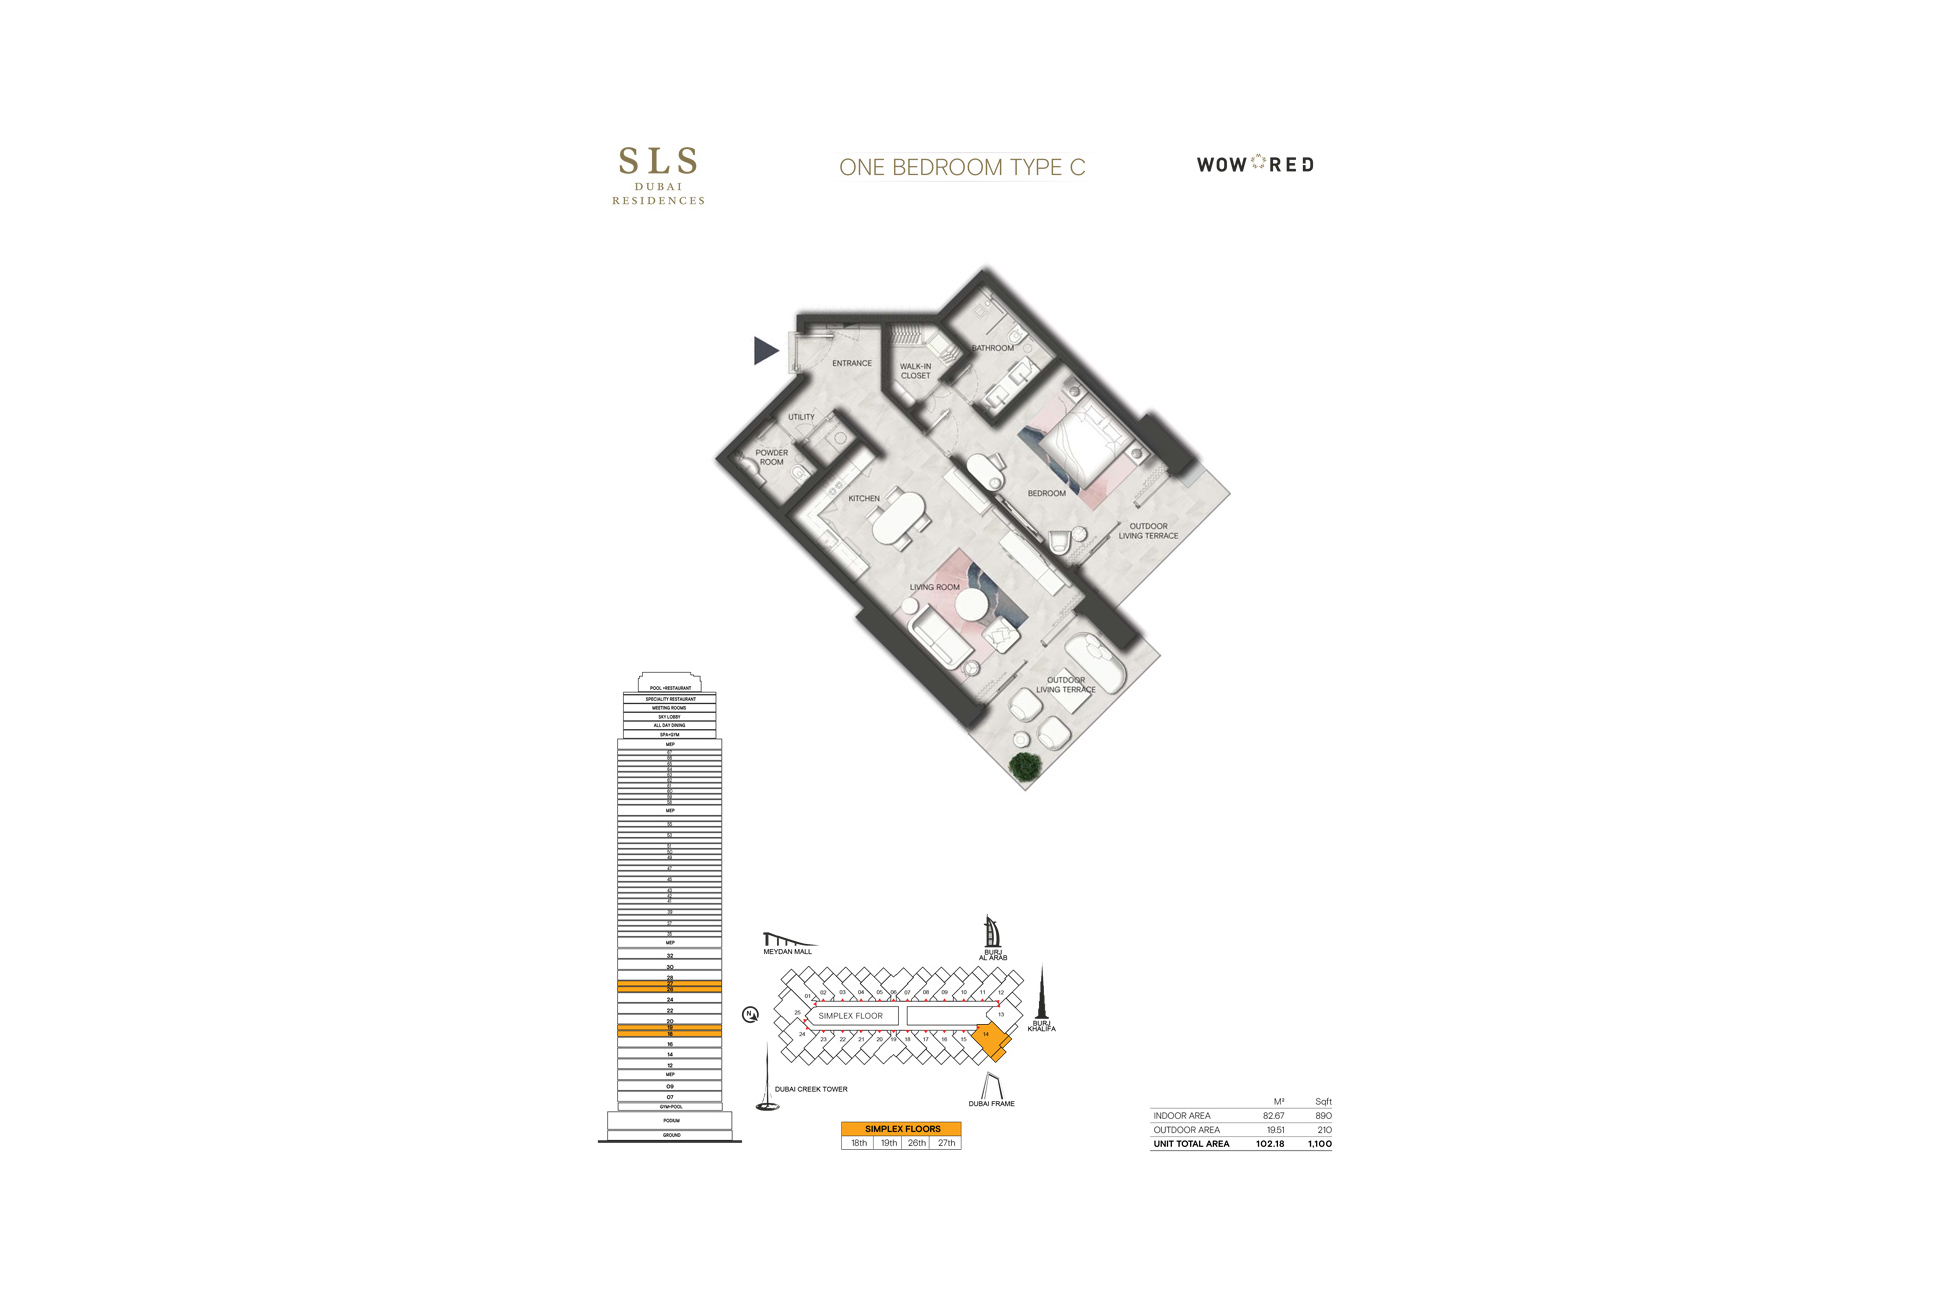 SLS Residences 1 BR Floor Plan Type C